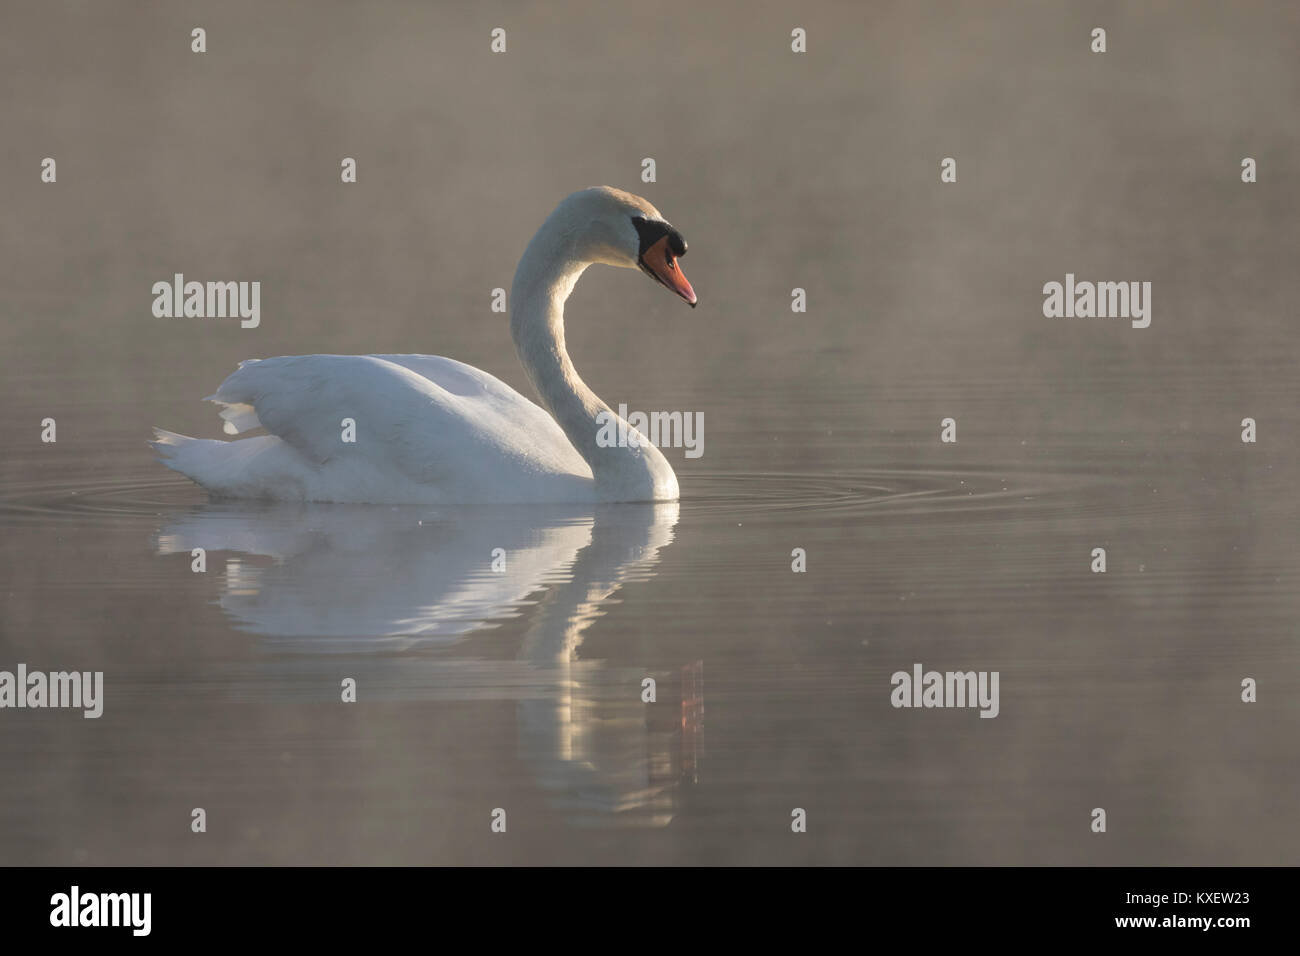 Mute swan (Cygnus olor) swimming in lake covered in early morning mist - Stock Image